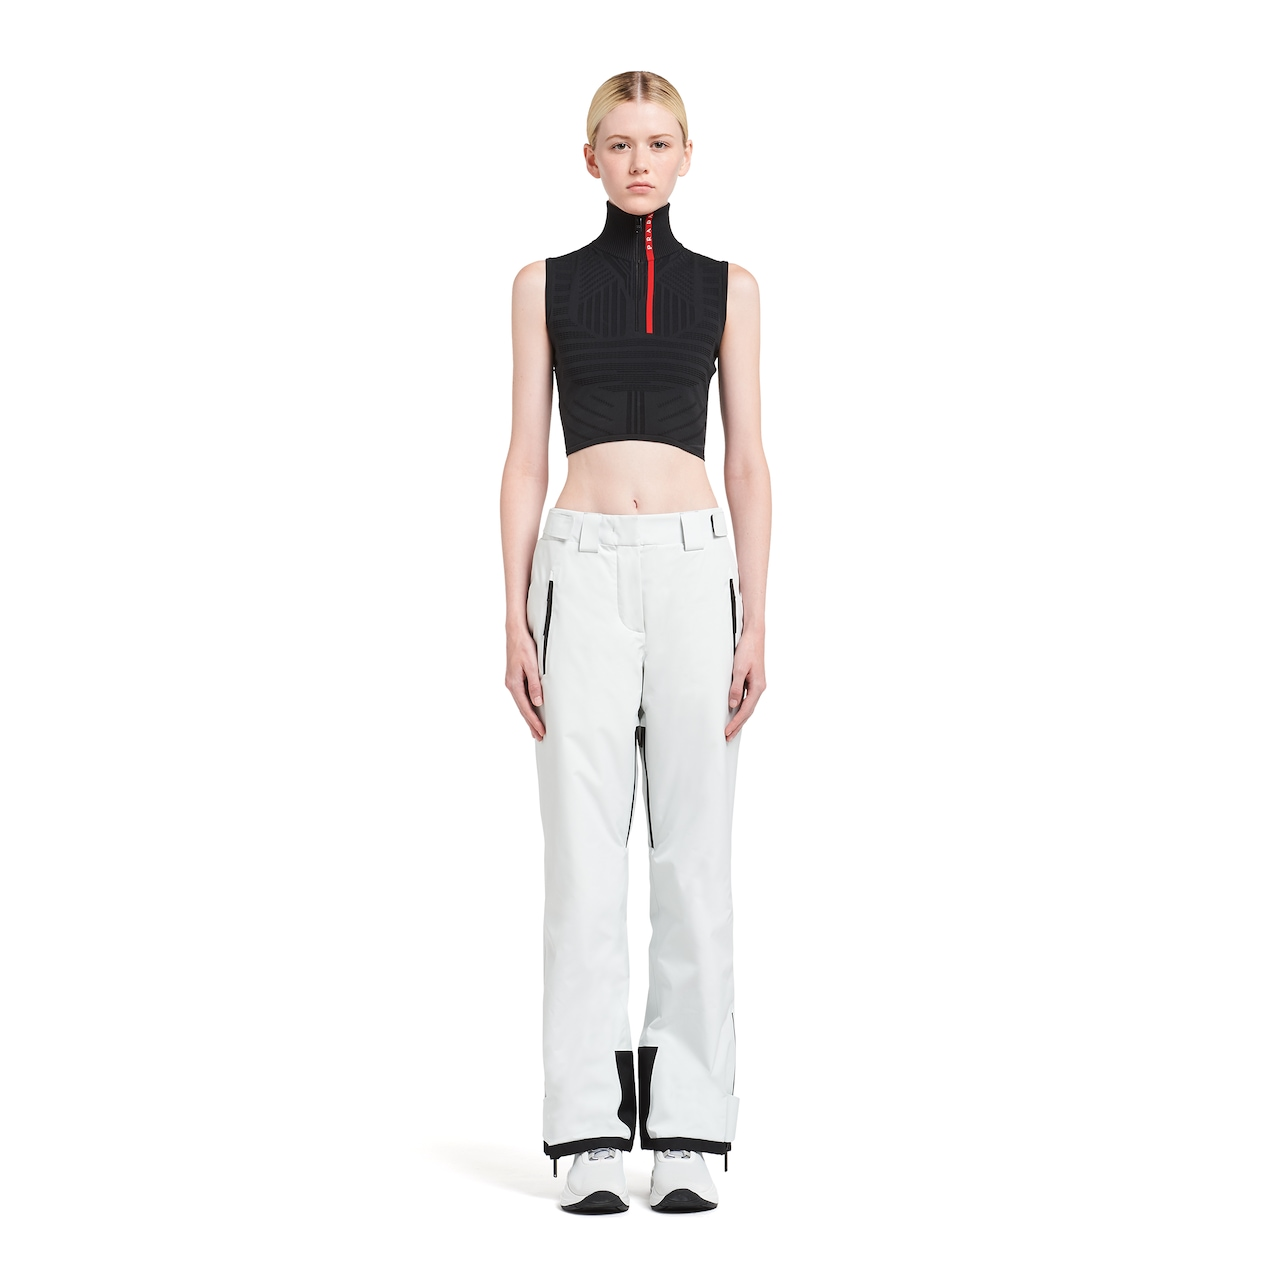 Prada LR-HX018 technical ski fabric trousers 2